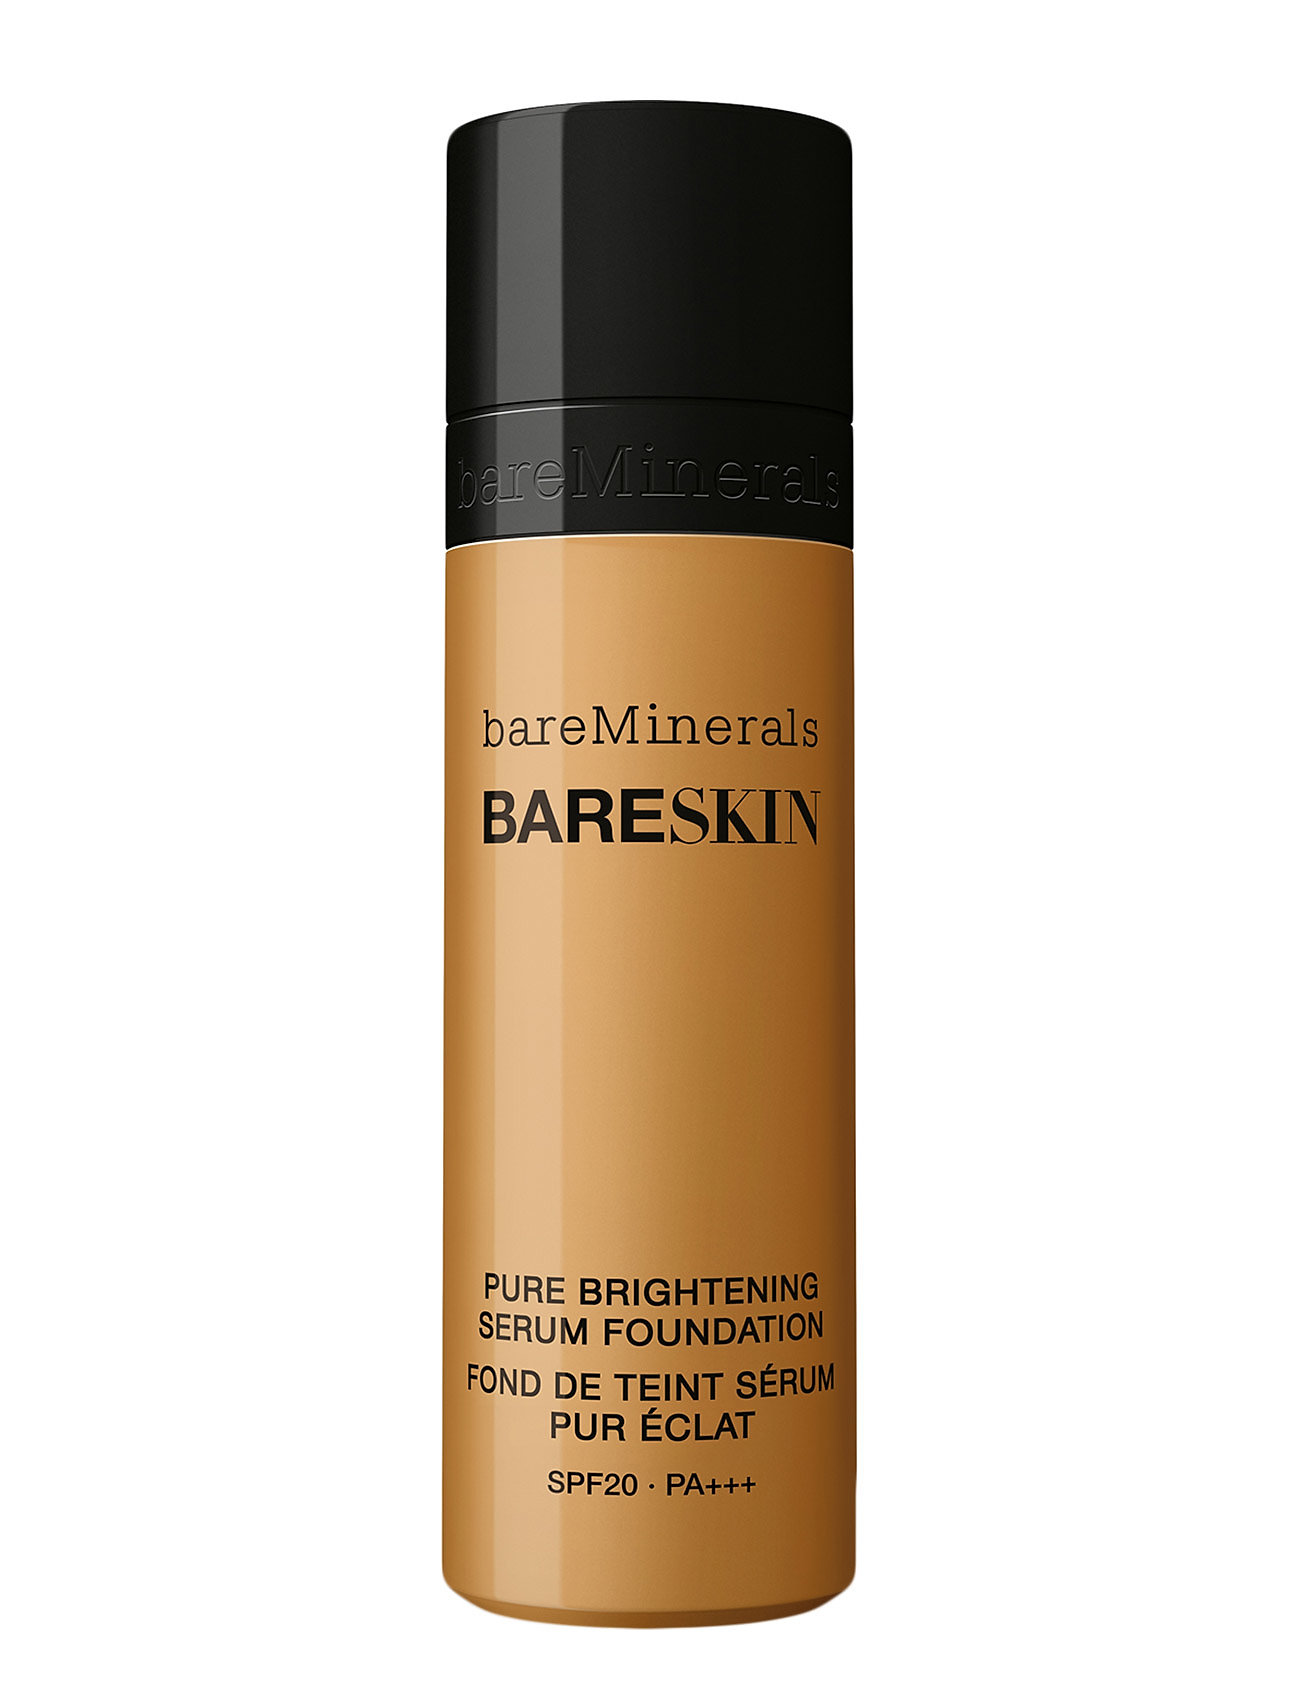 Image of Bareskin Pure Brightening Serum Foundation Spf 20 Foundation Makeup BareMinerals (3067521701)